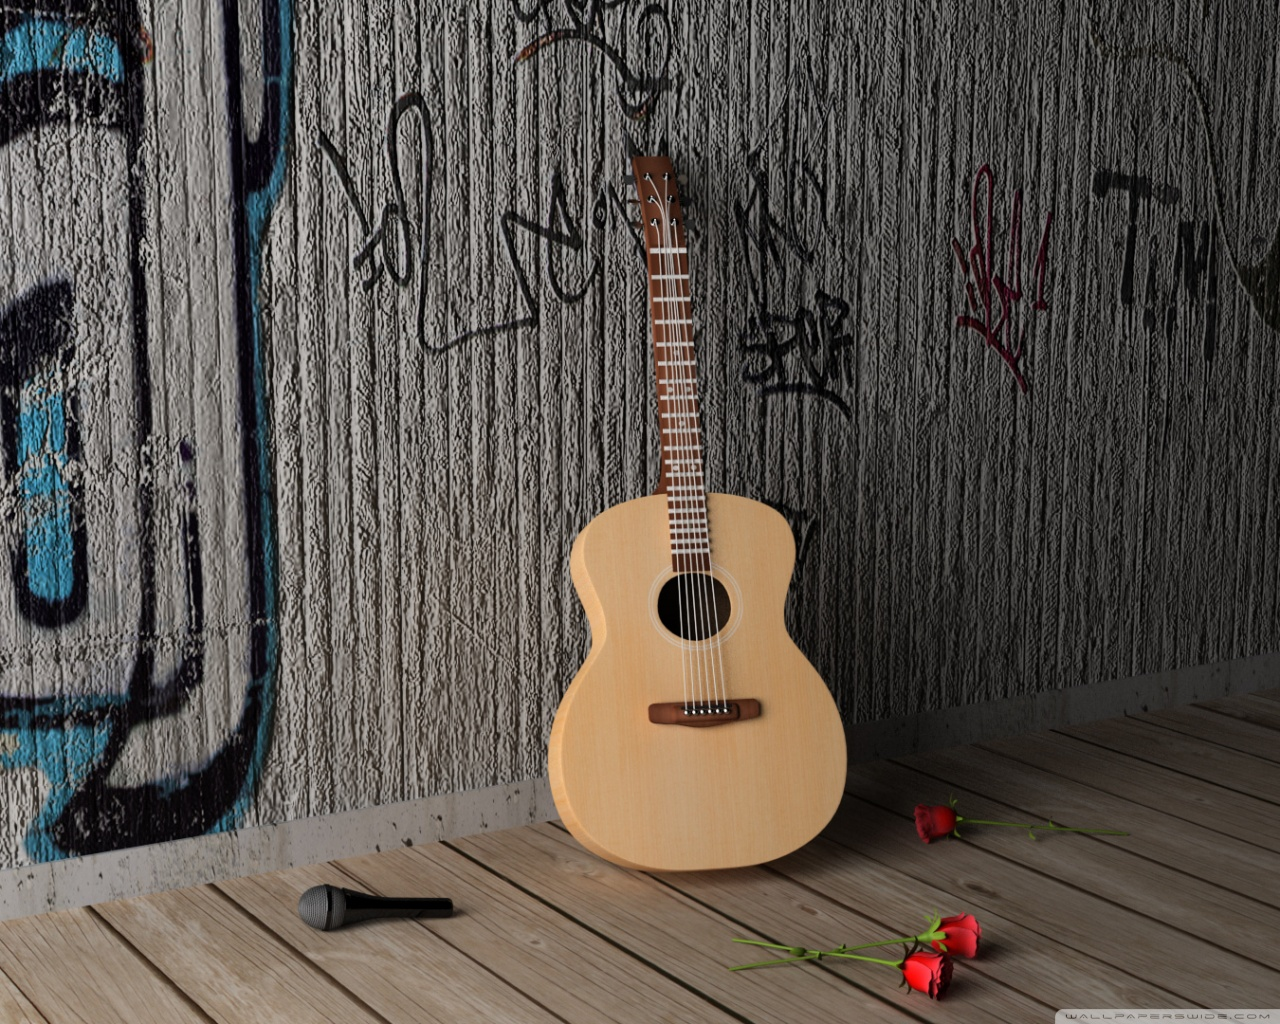 Hd Guitar Wallpapers 1080p Posted By Ethan Johnson